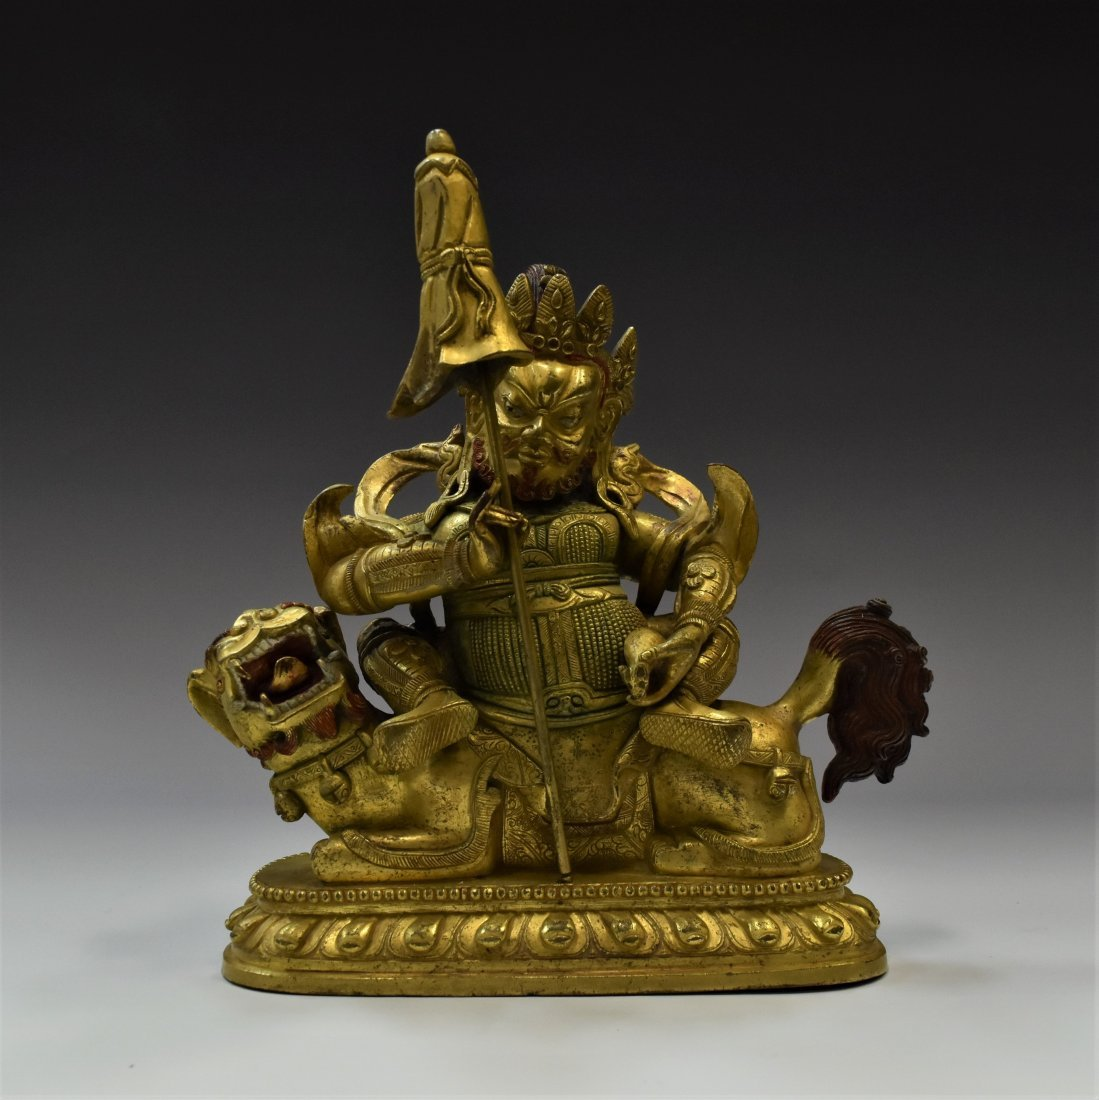 RIDING LION VAISHRAVANA GILT BRONZE BUDDHA STATUE